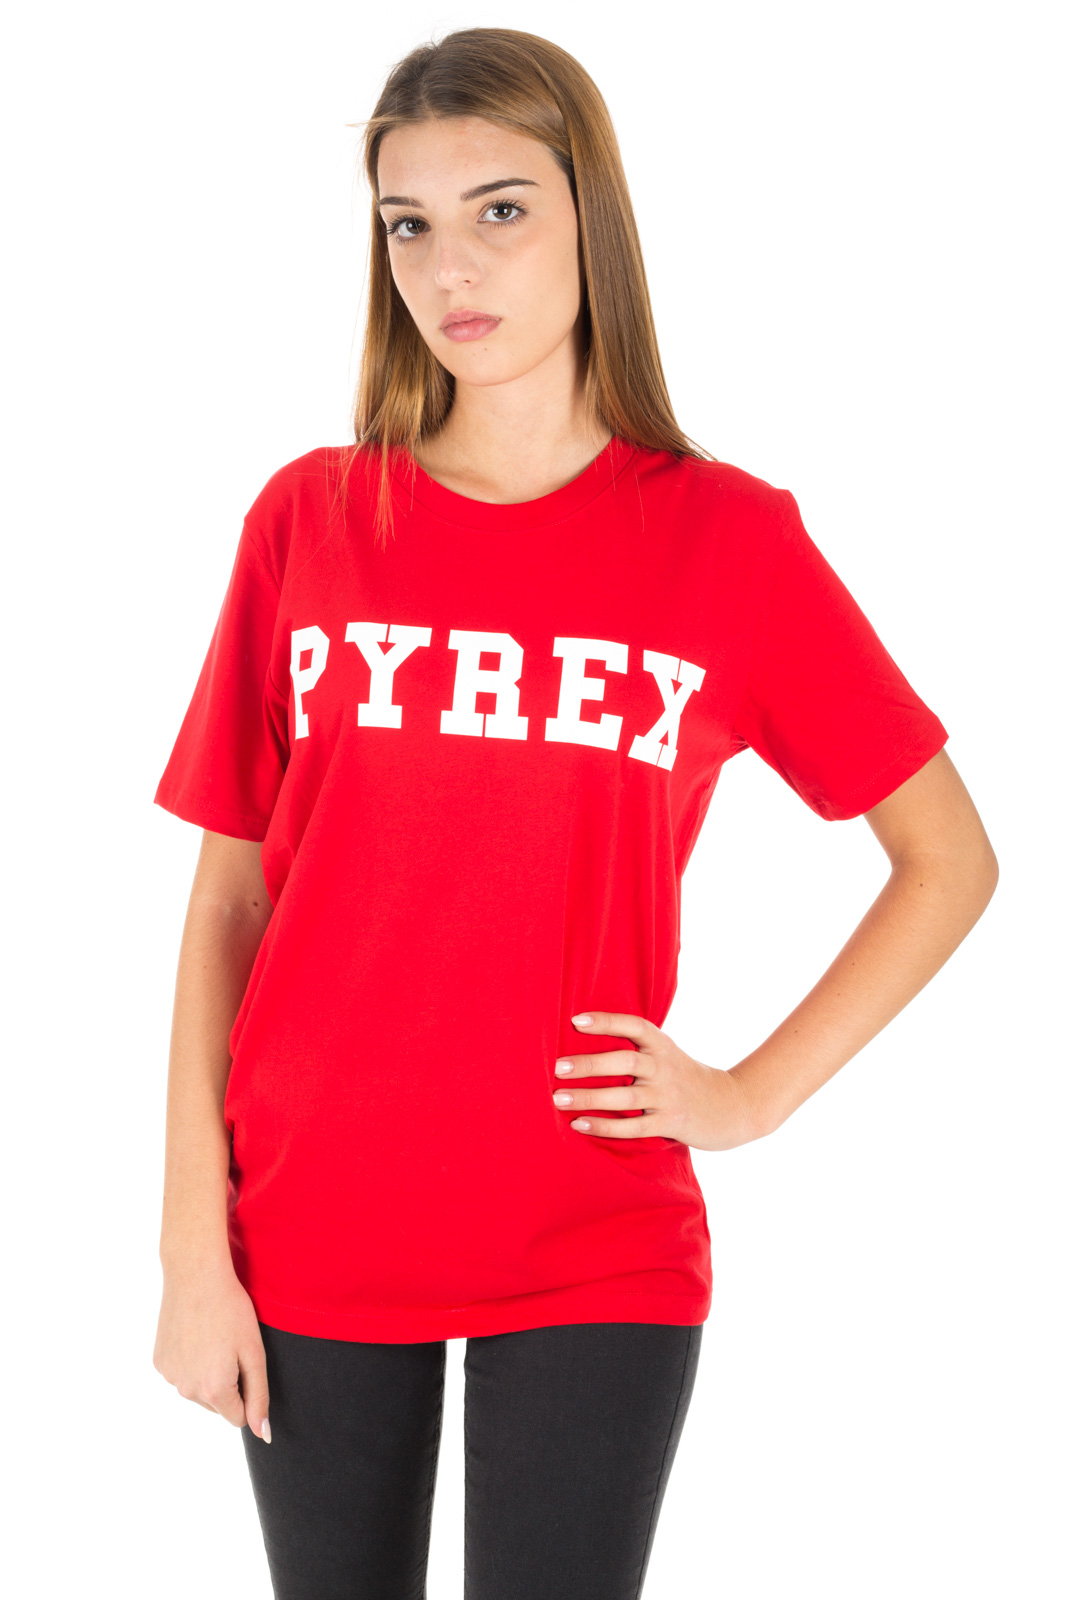 Pyrex - Red Unisex T shirt